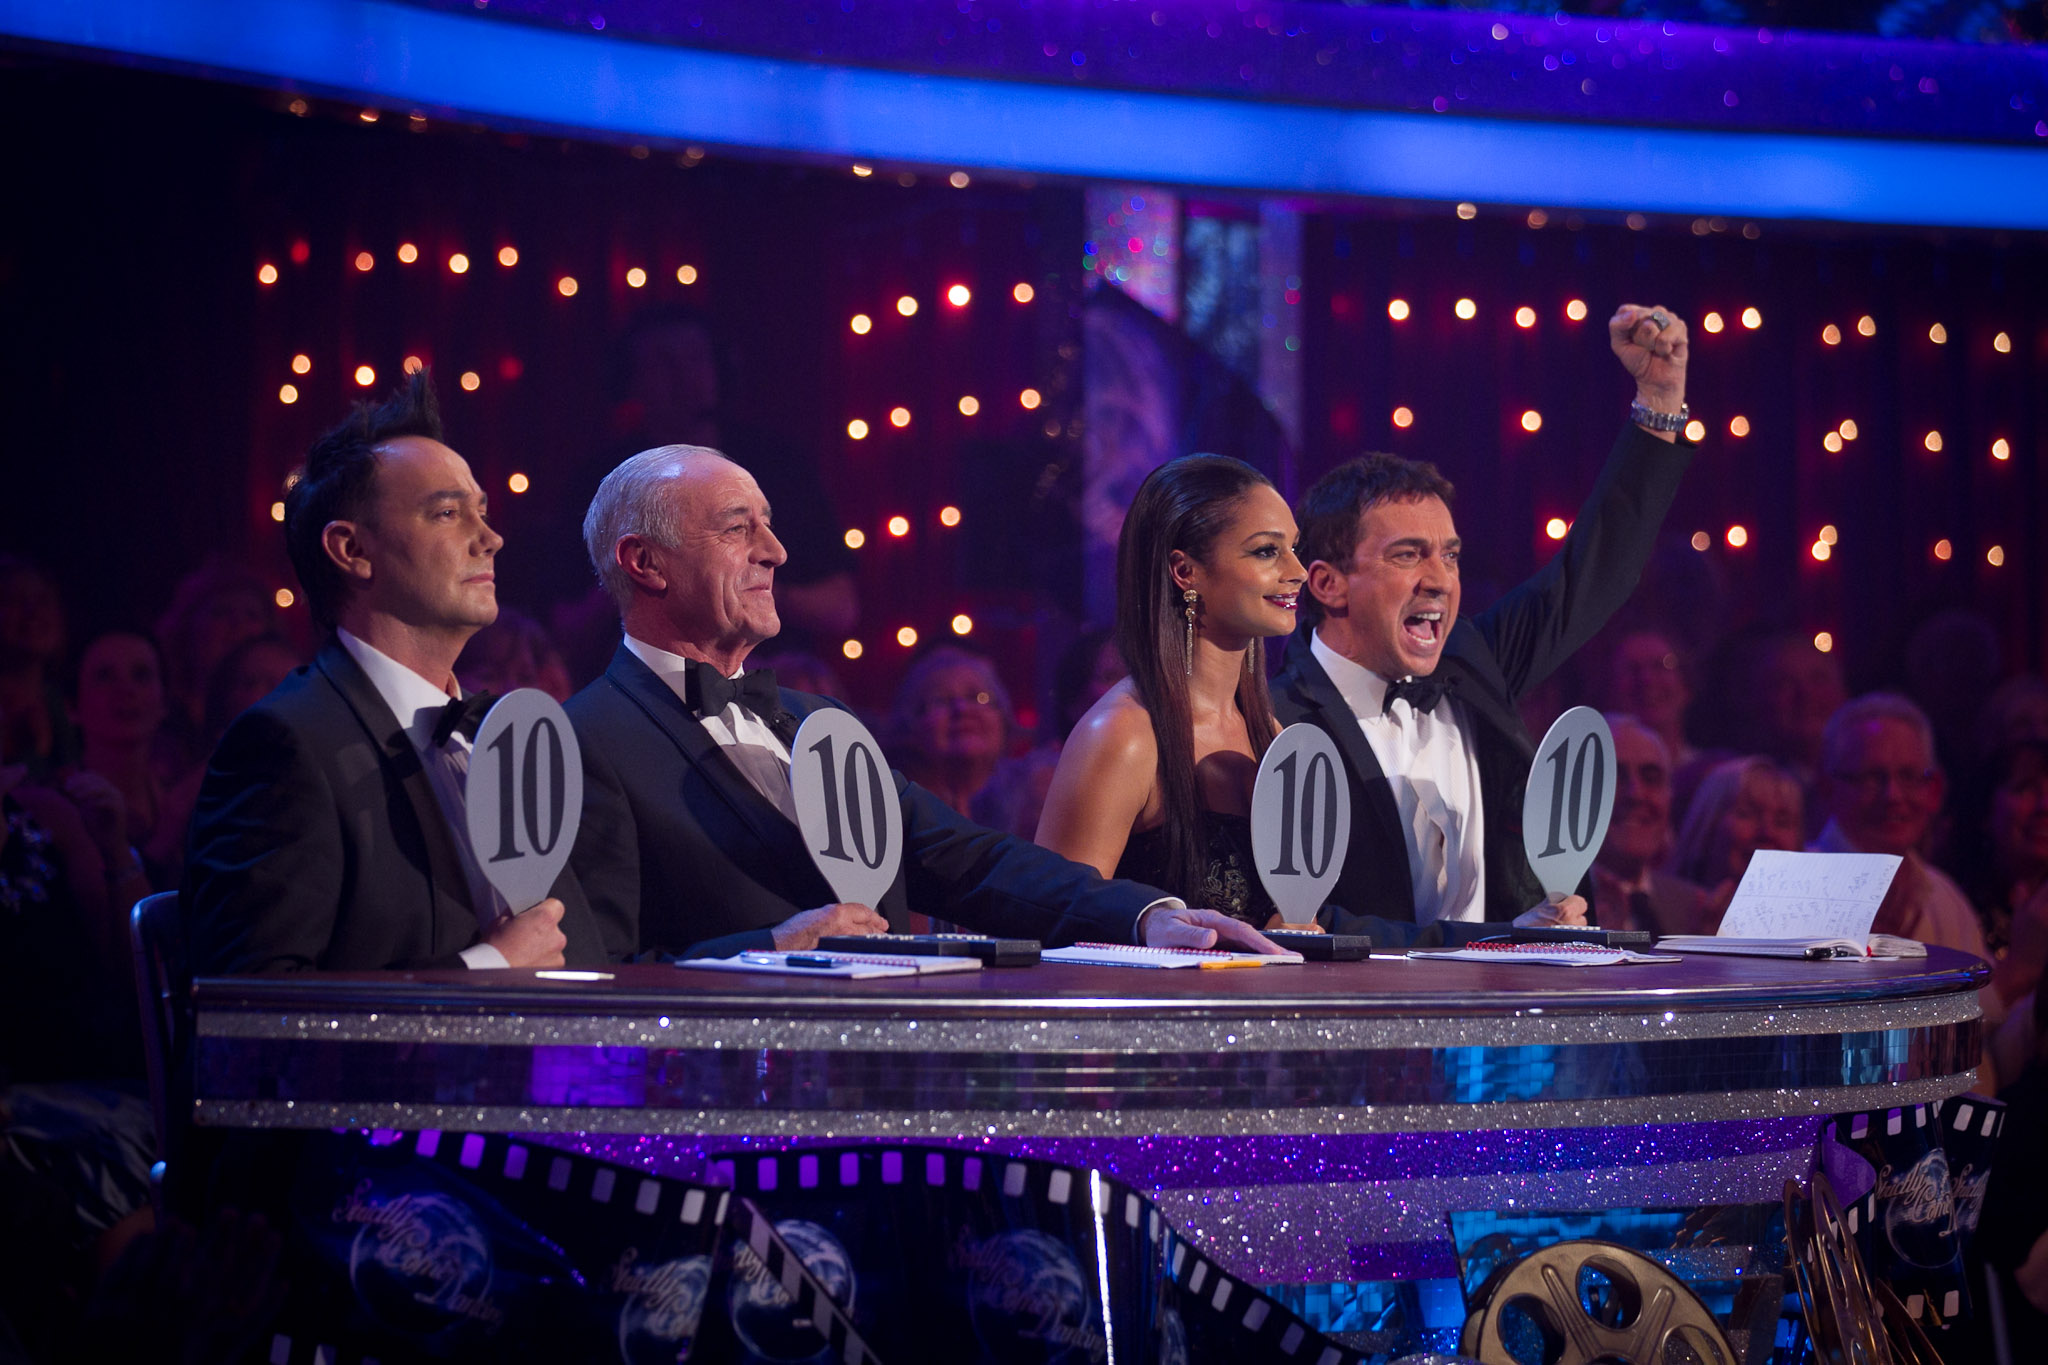 ballet news, ballet, dance, BBC, Strictly, results